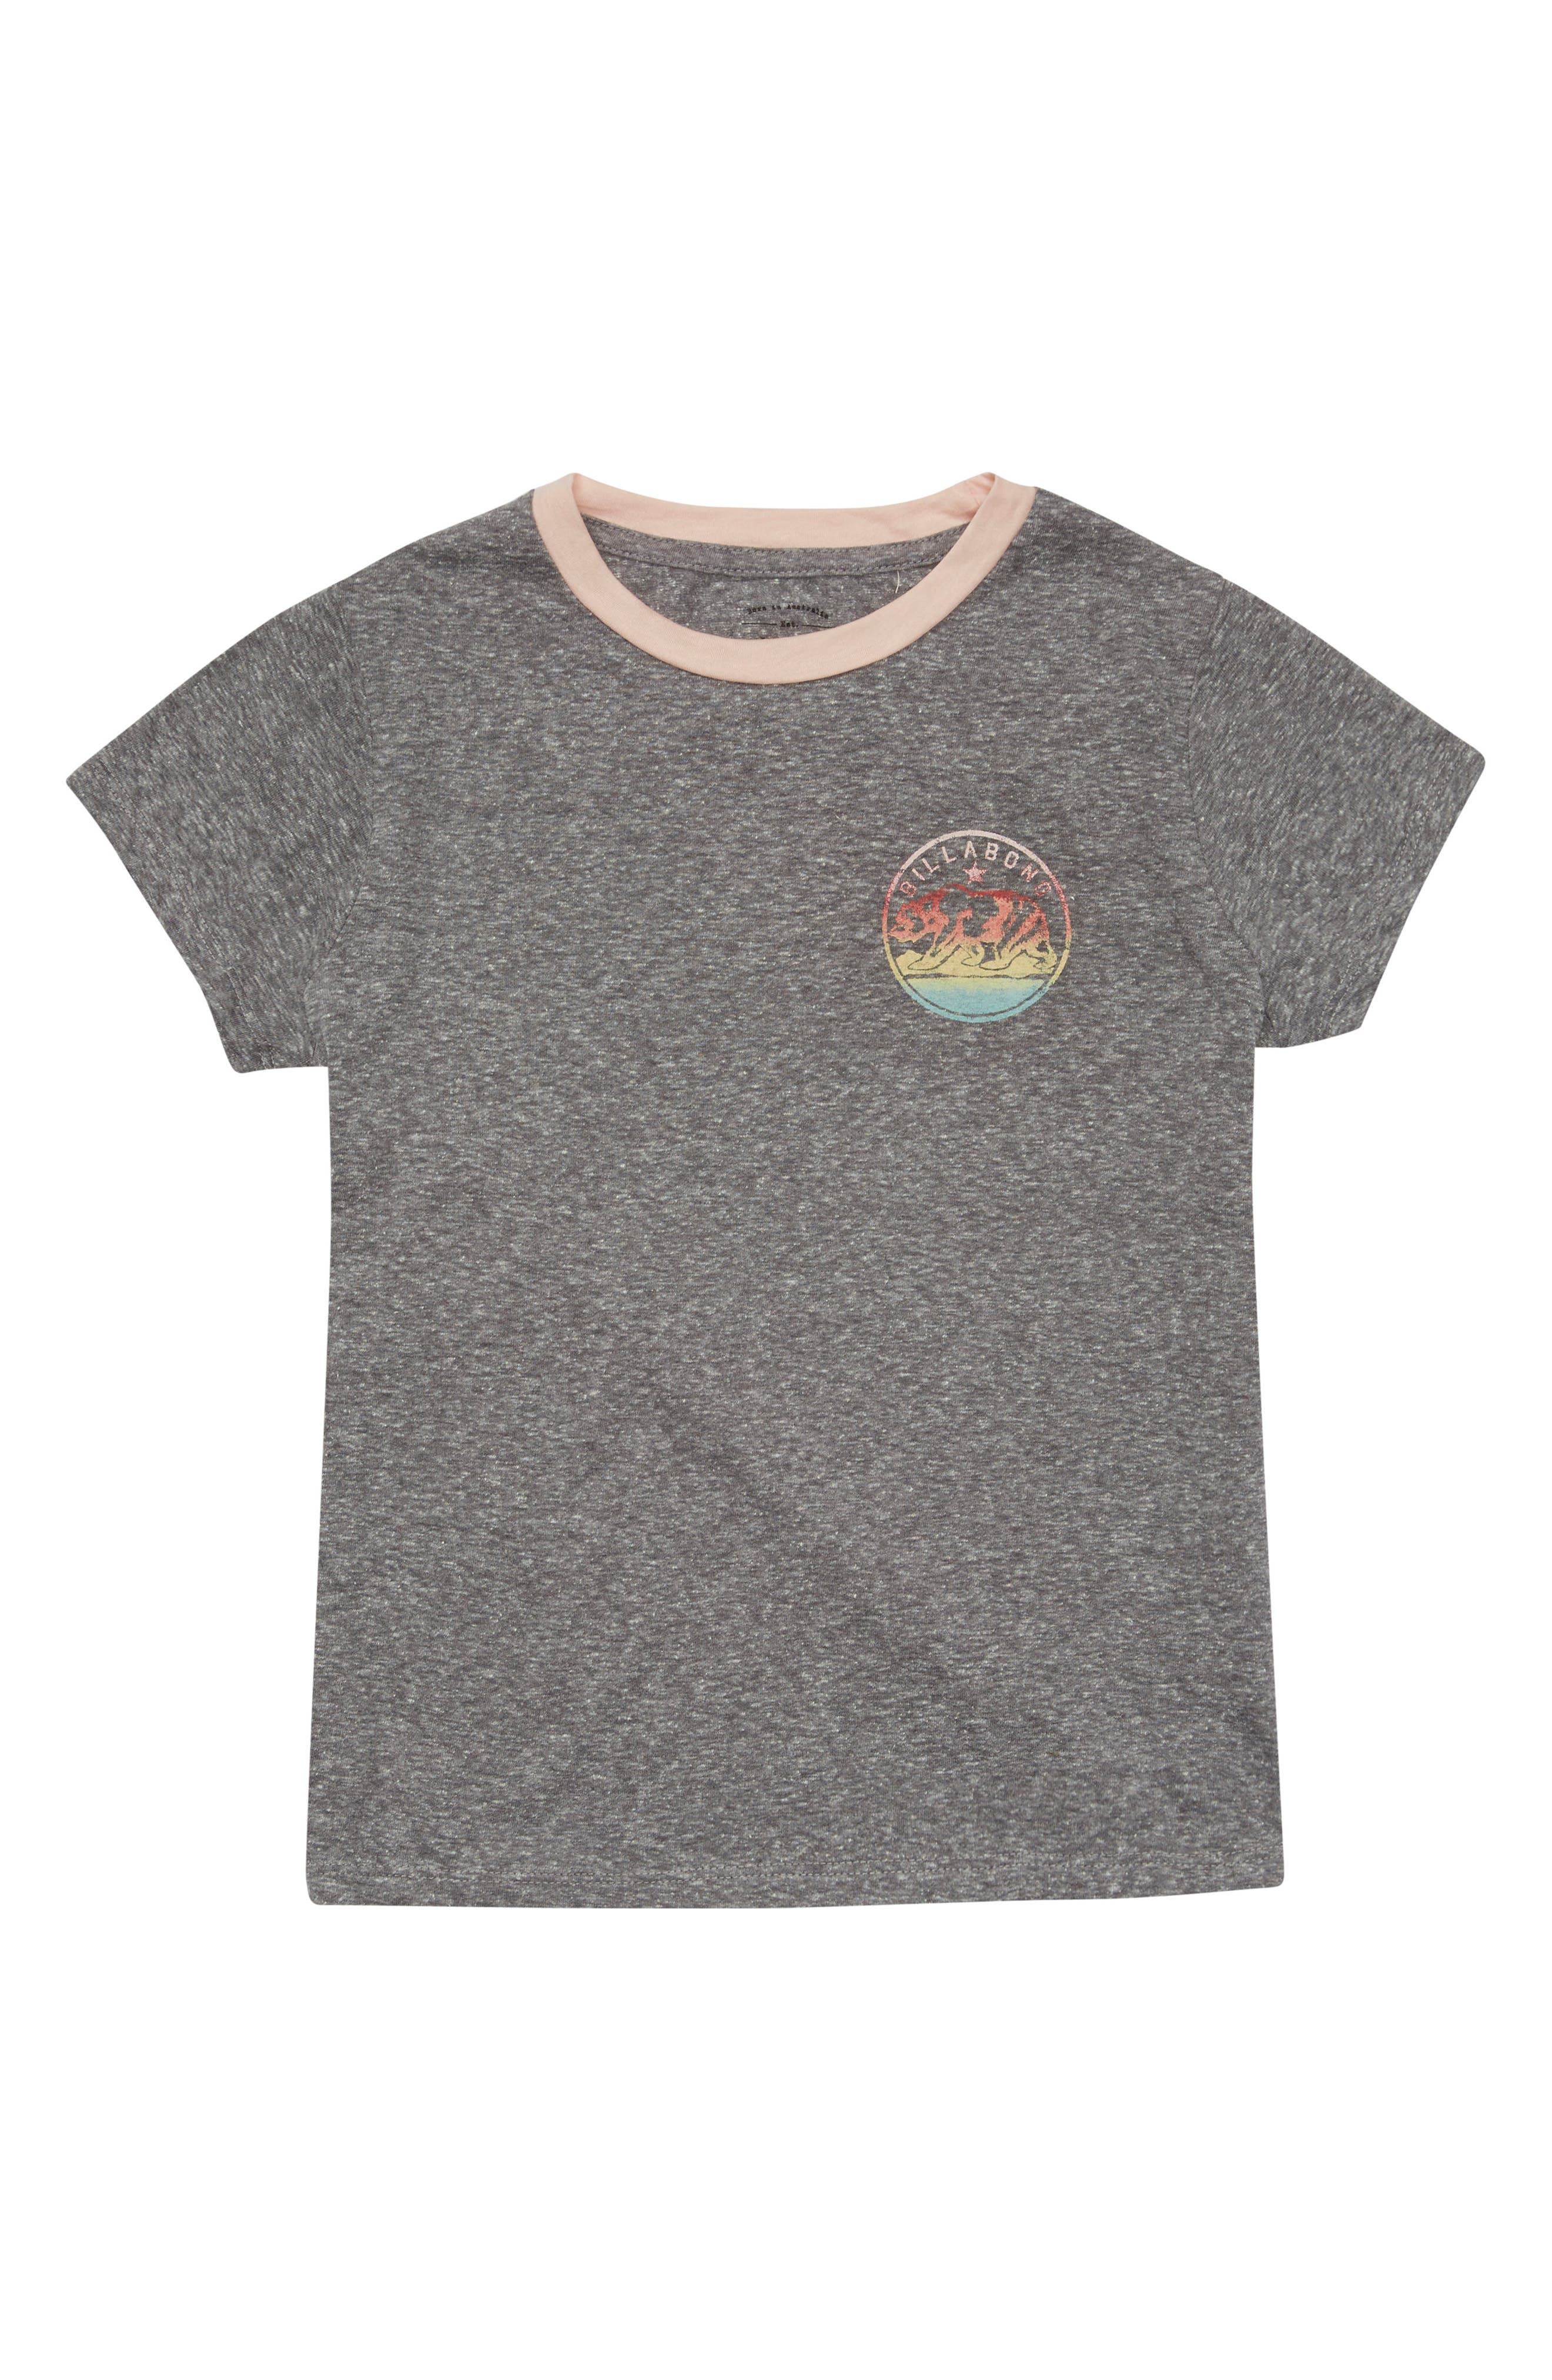 Bear Stamp Graphic Tee,                         Main,                         color, 052